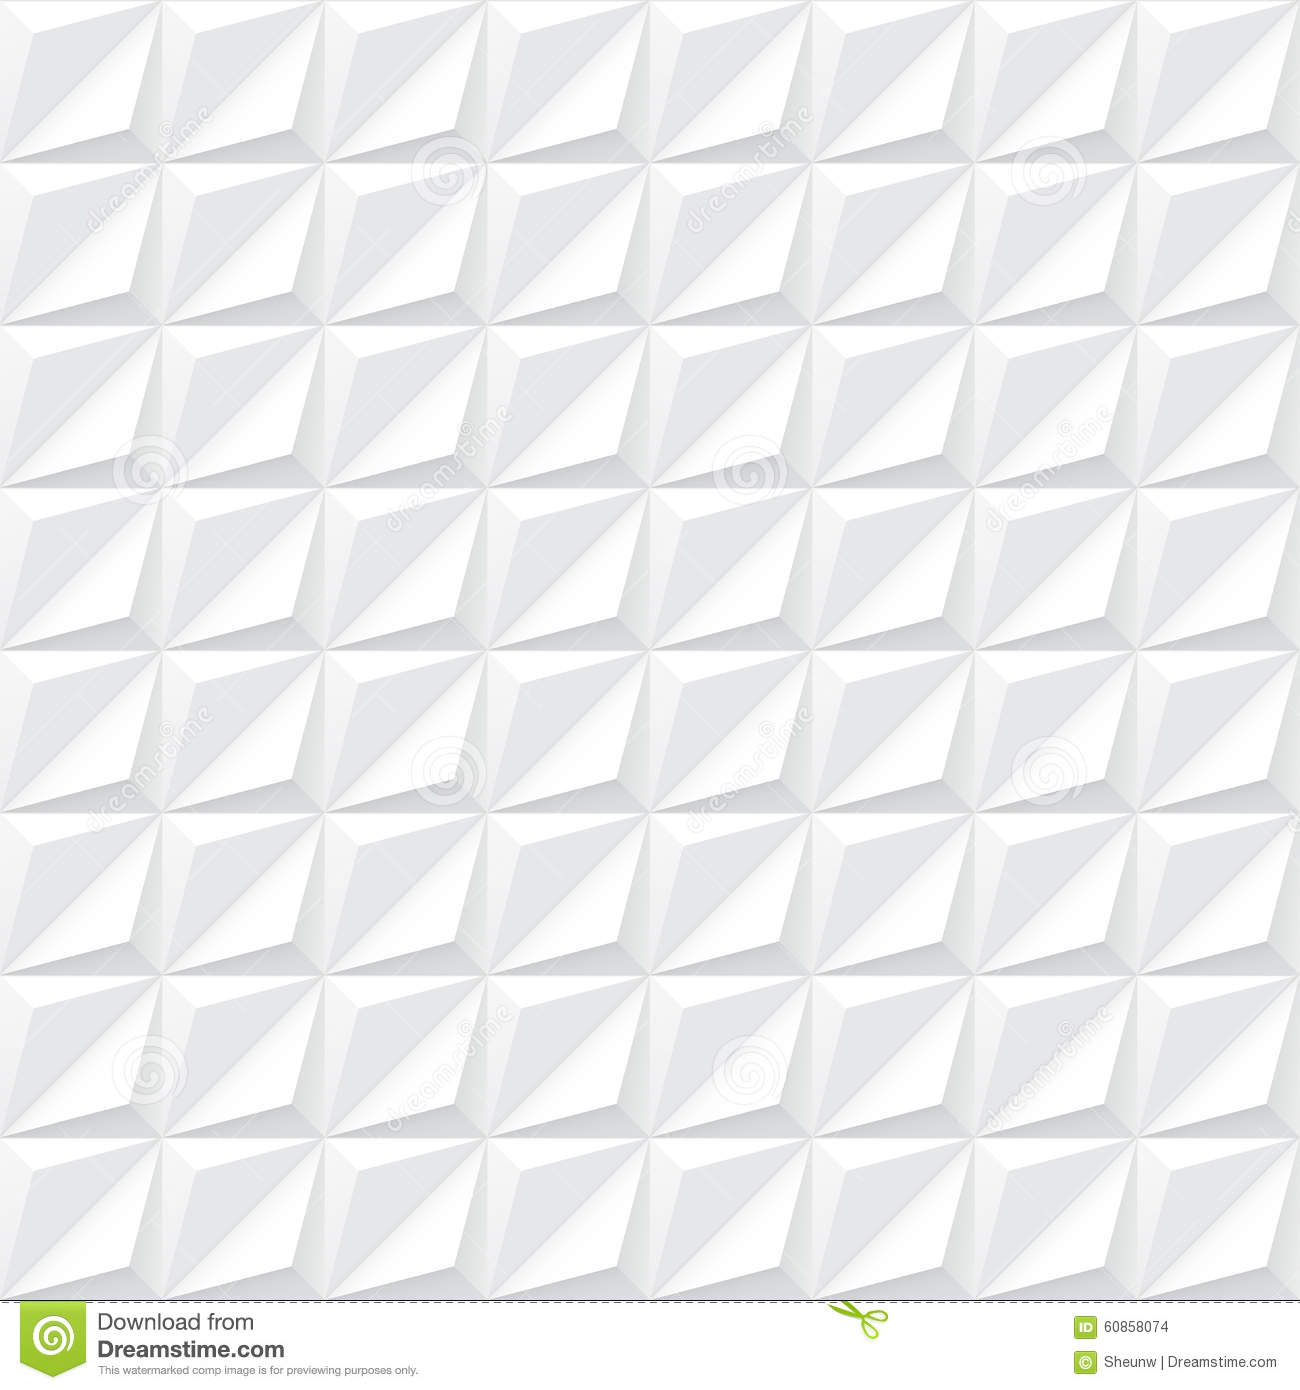 Designer White Abstract Ceramic Wall Tile Pack Of 8 L: White Geometric Texture